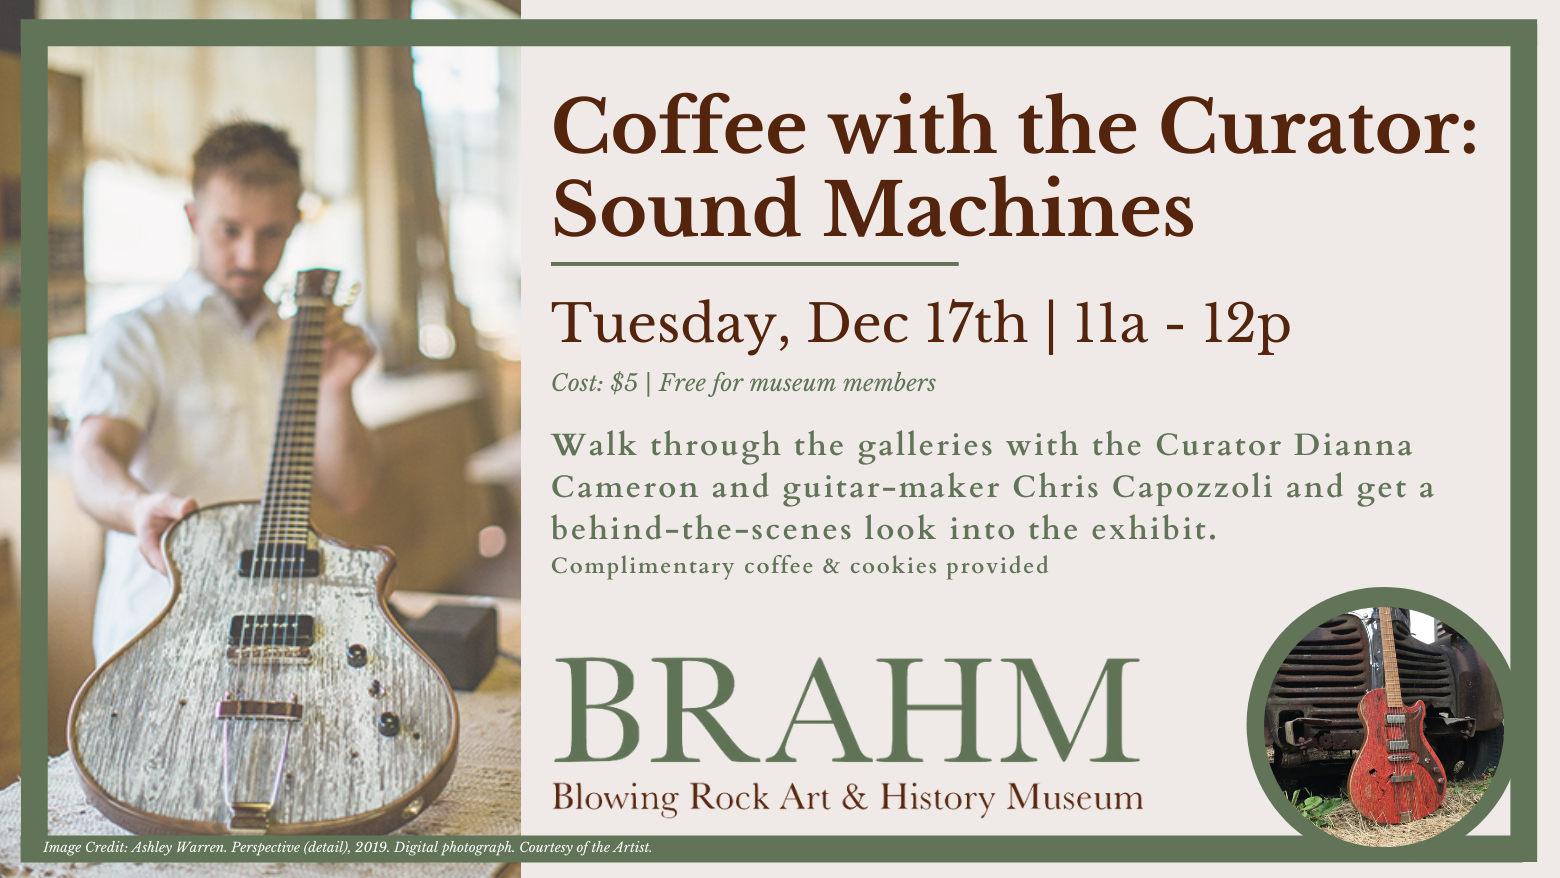 Coffee with the Curator: Sound Machines